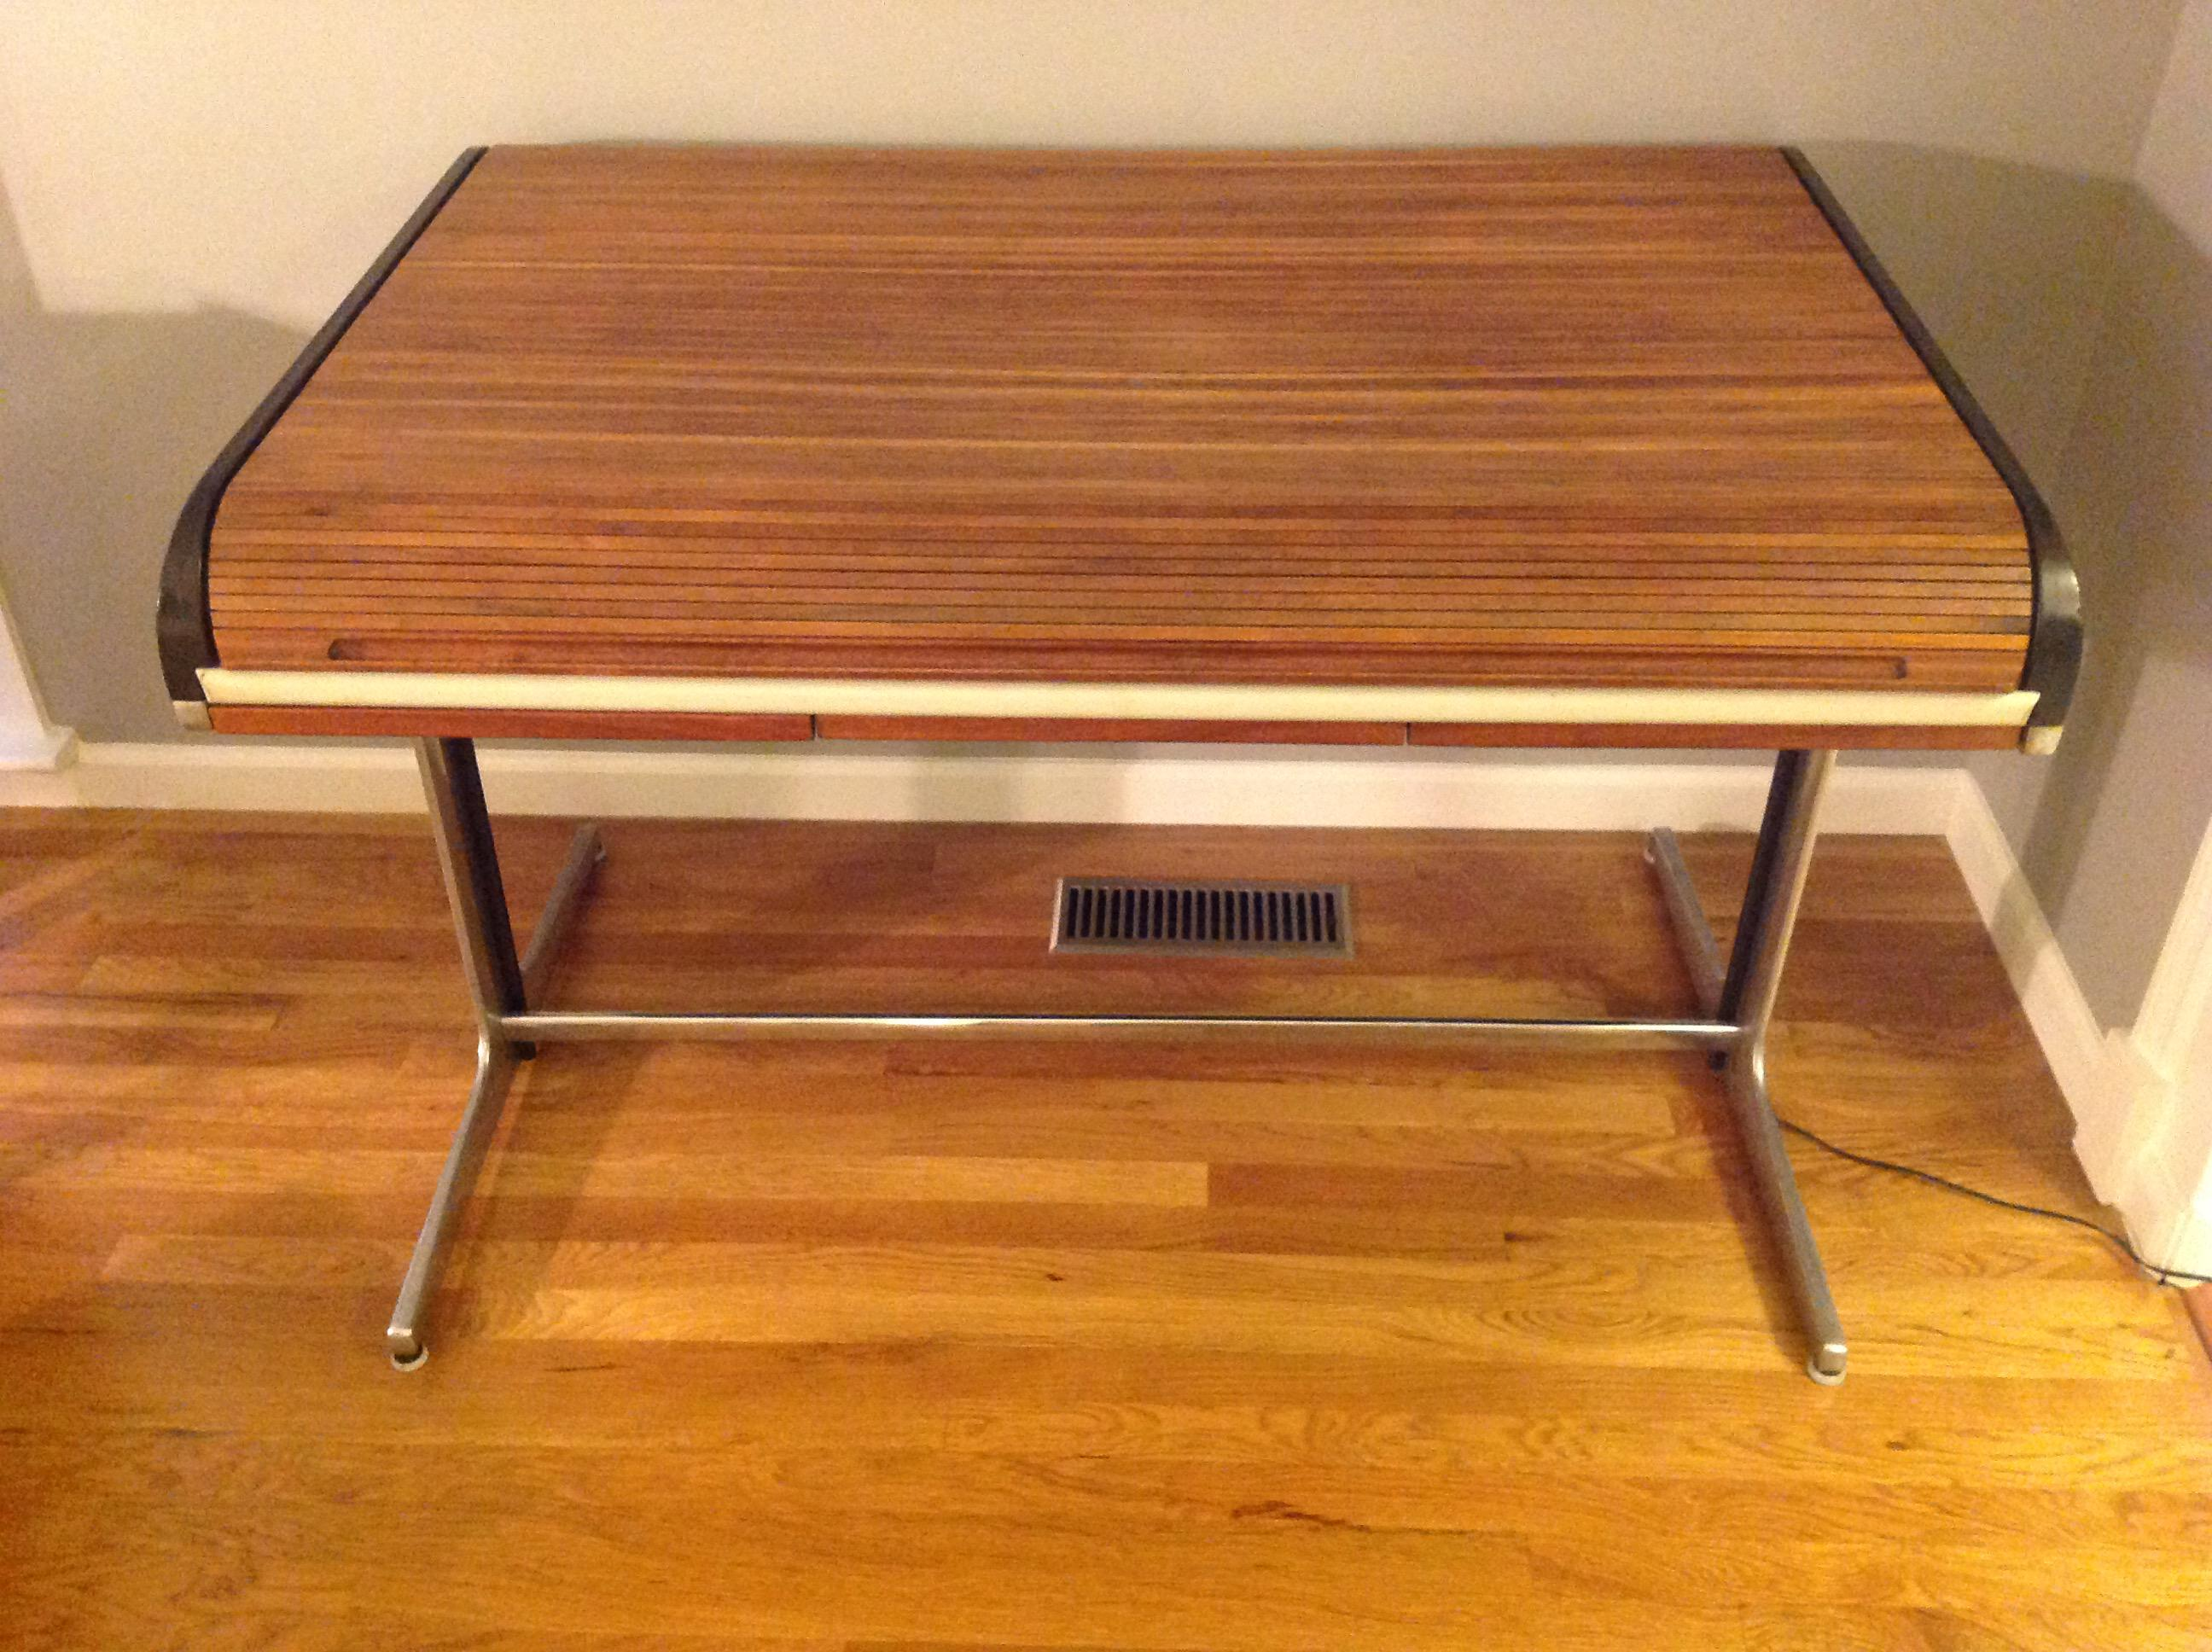 Action Office Roll Top Desk Designed By George Nelson In The 1960s For  Herman Miller.